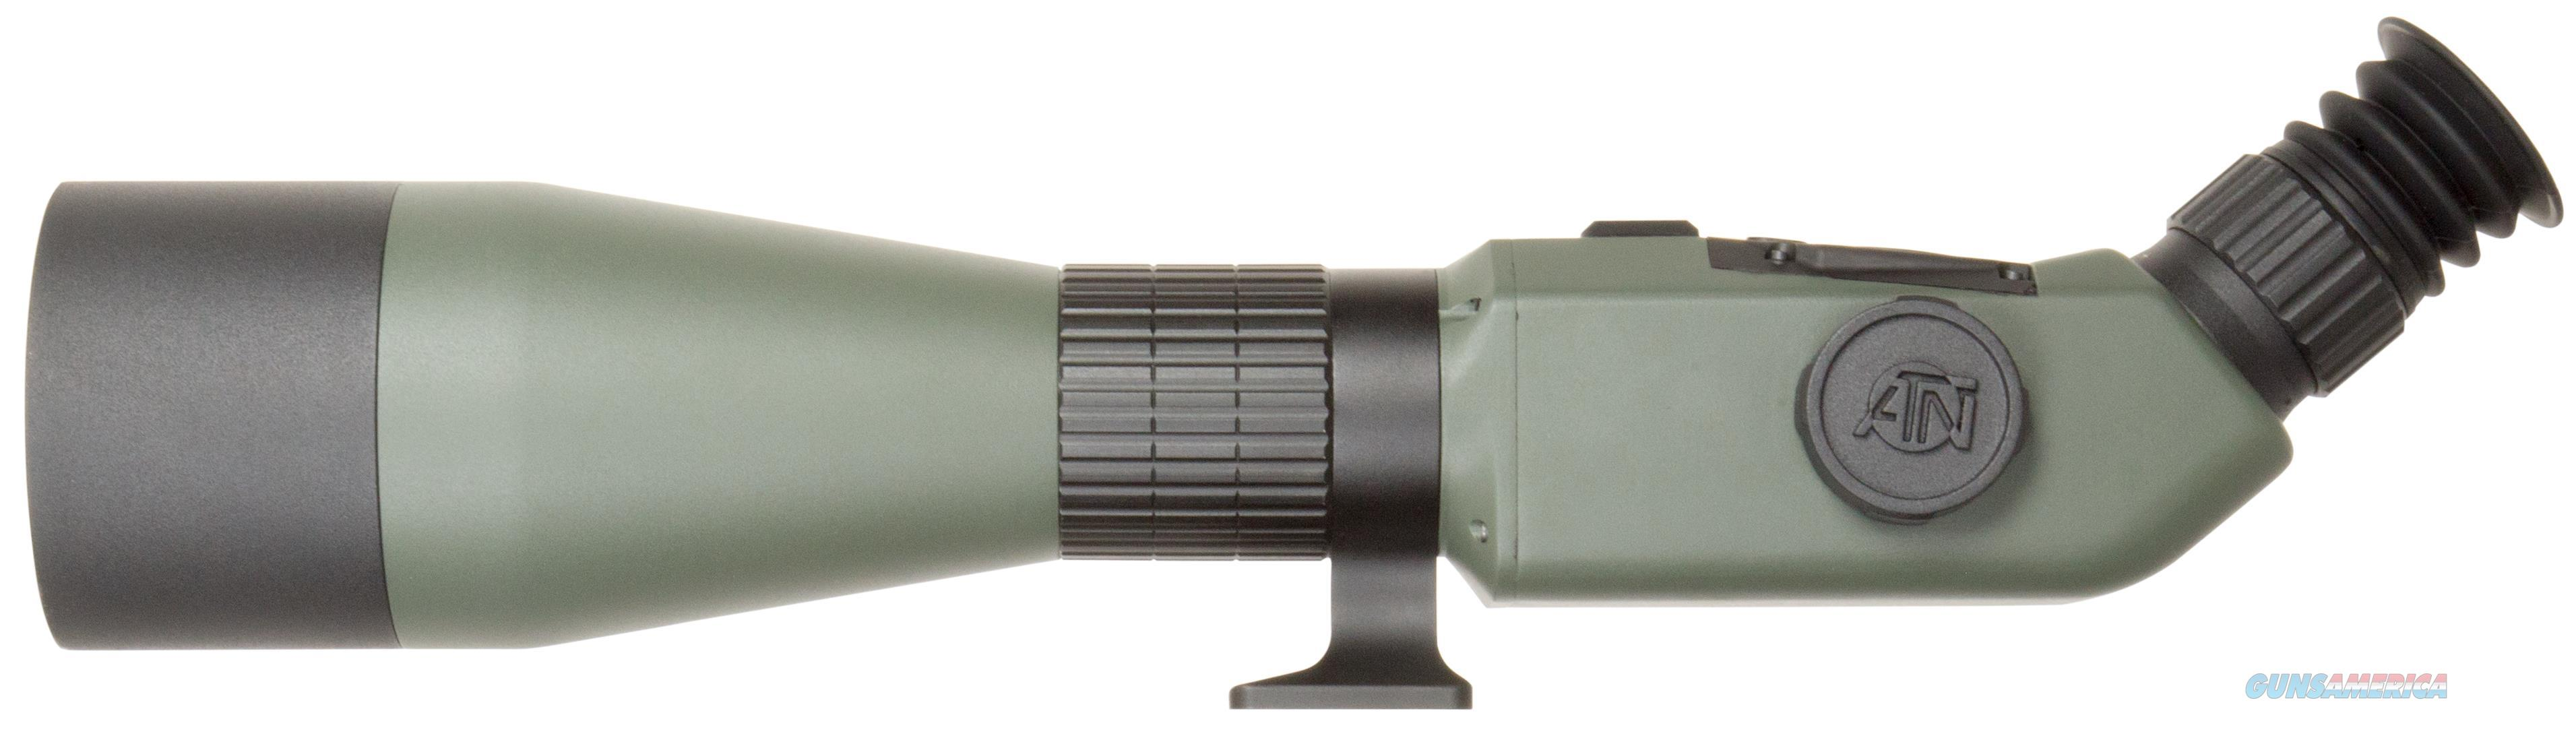 Atn Dgsshd2080 Spotting Scope Monocular 20-80X 200Mm 107 Ft @ 1000 Yds Fov DGSSHD2080  Non-Guns > Scopes/Mounts/Rings & Optics > Mounts > Other